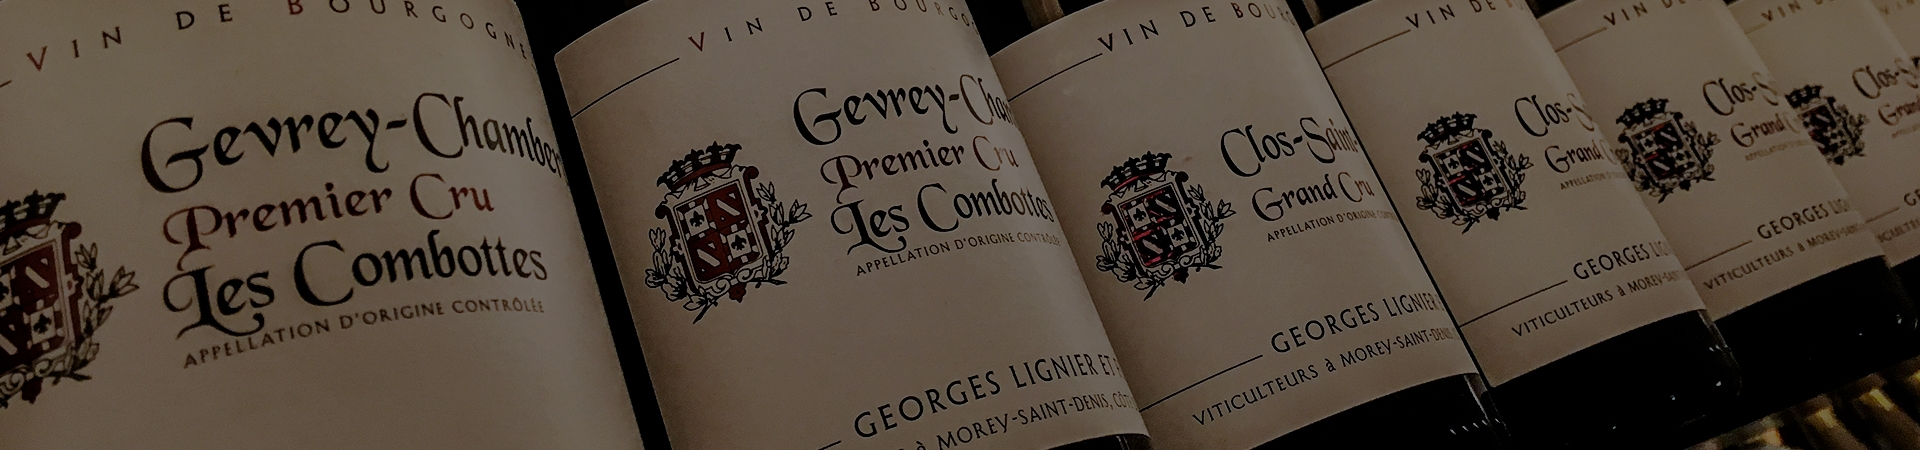 Domaine Georges Lignier, Bourgogne